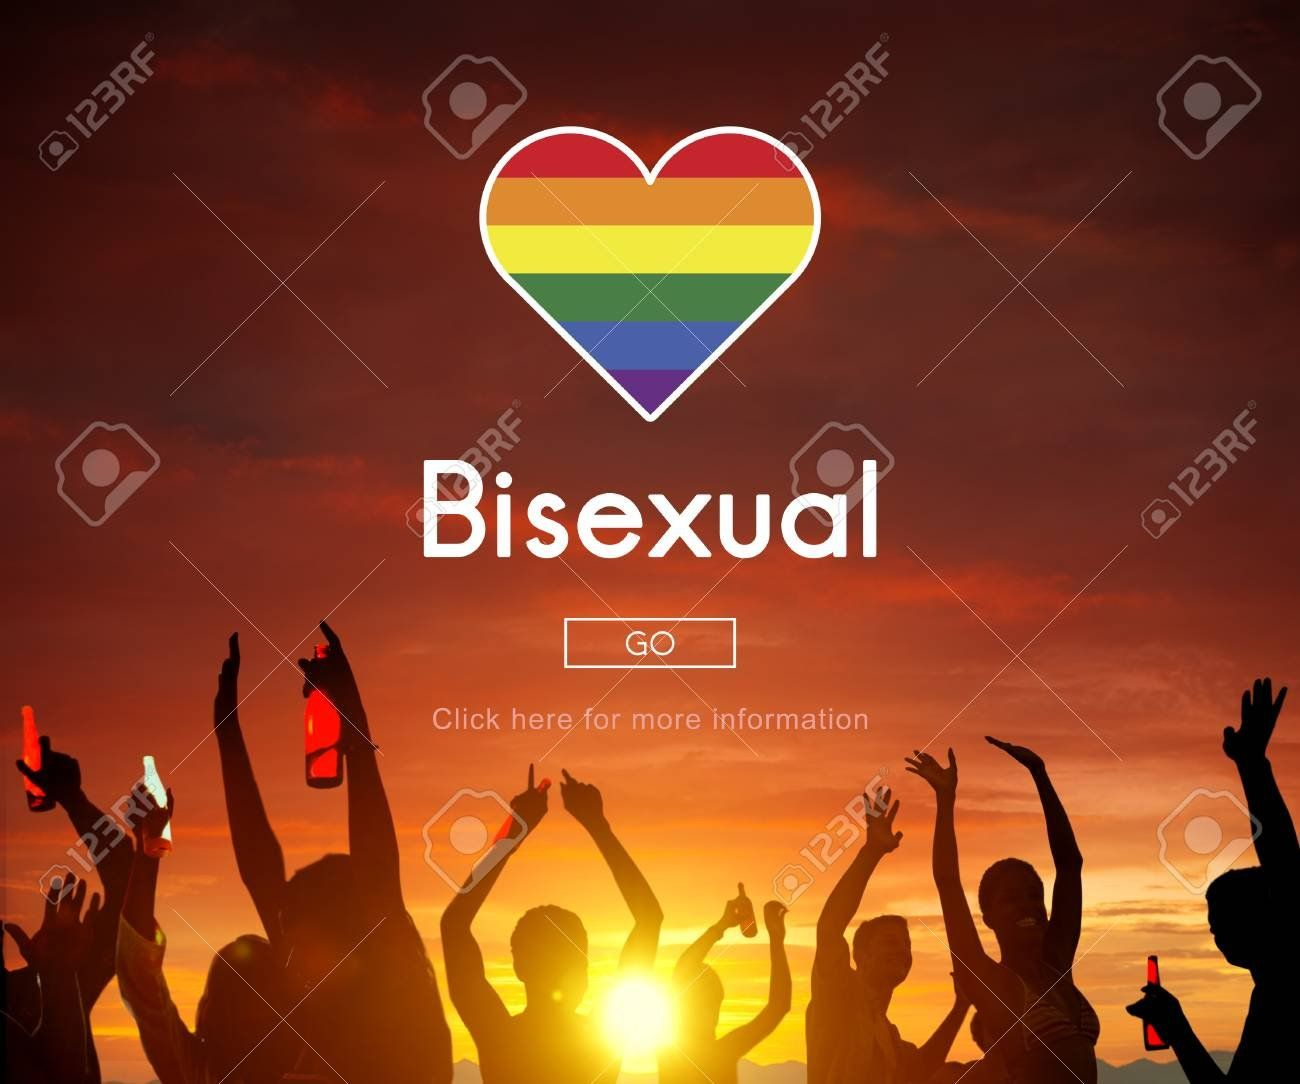 Free bisexual personal